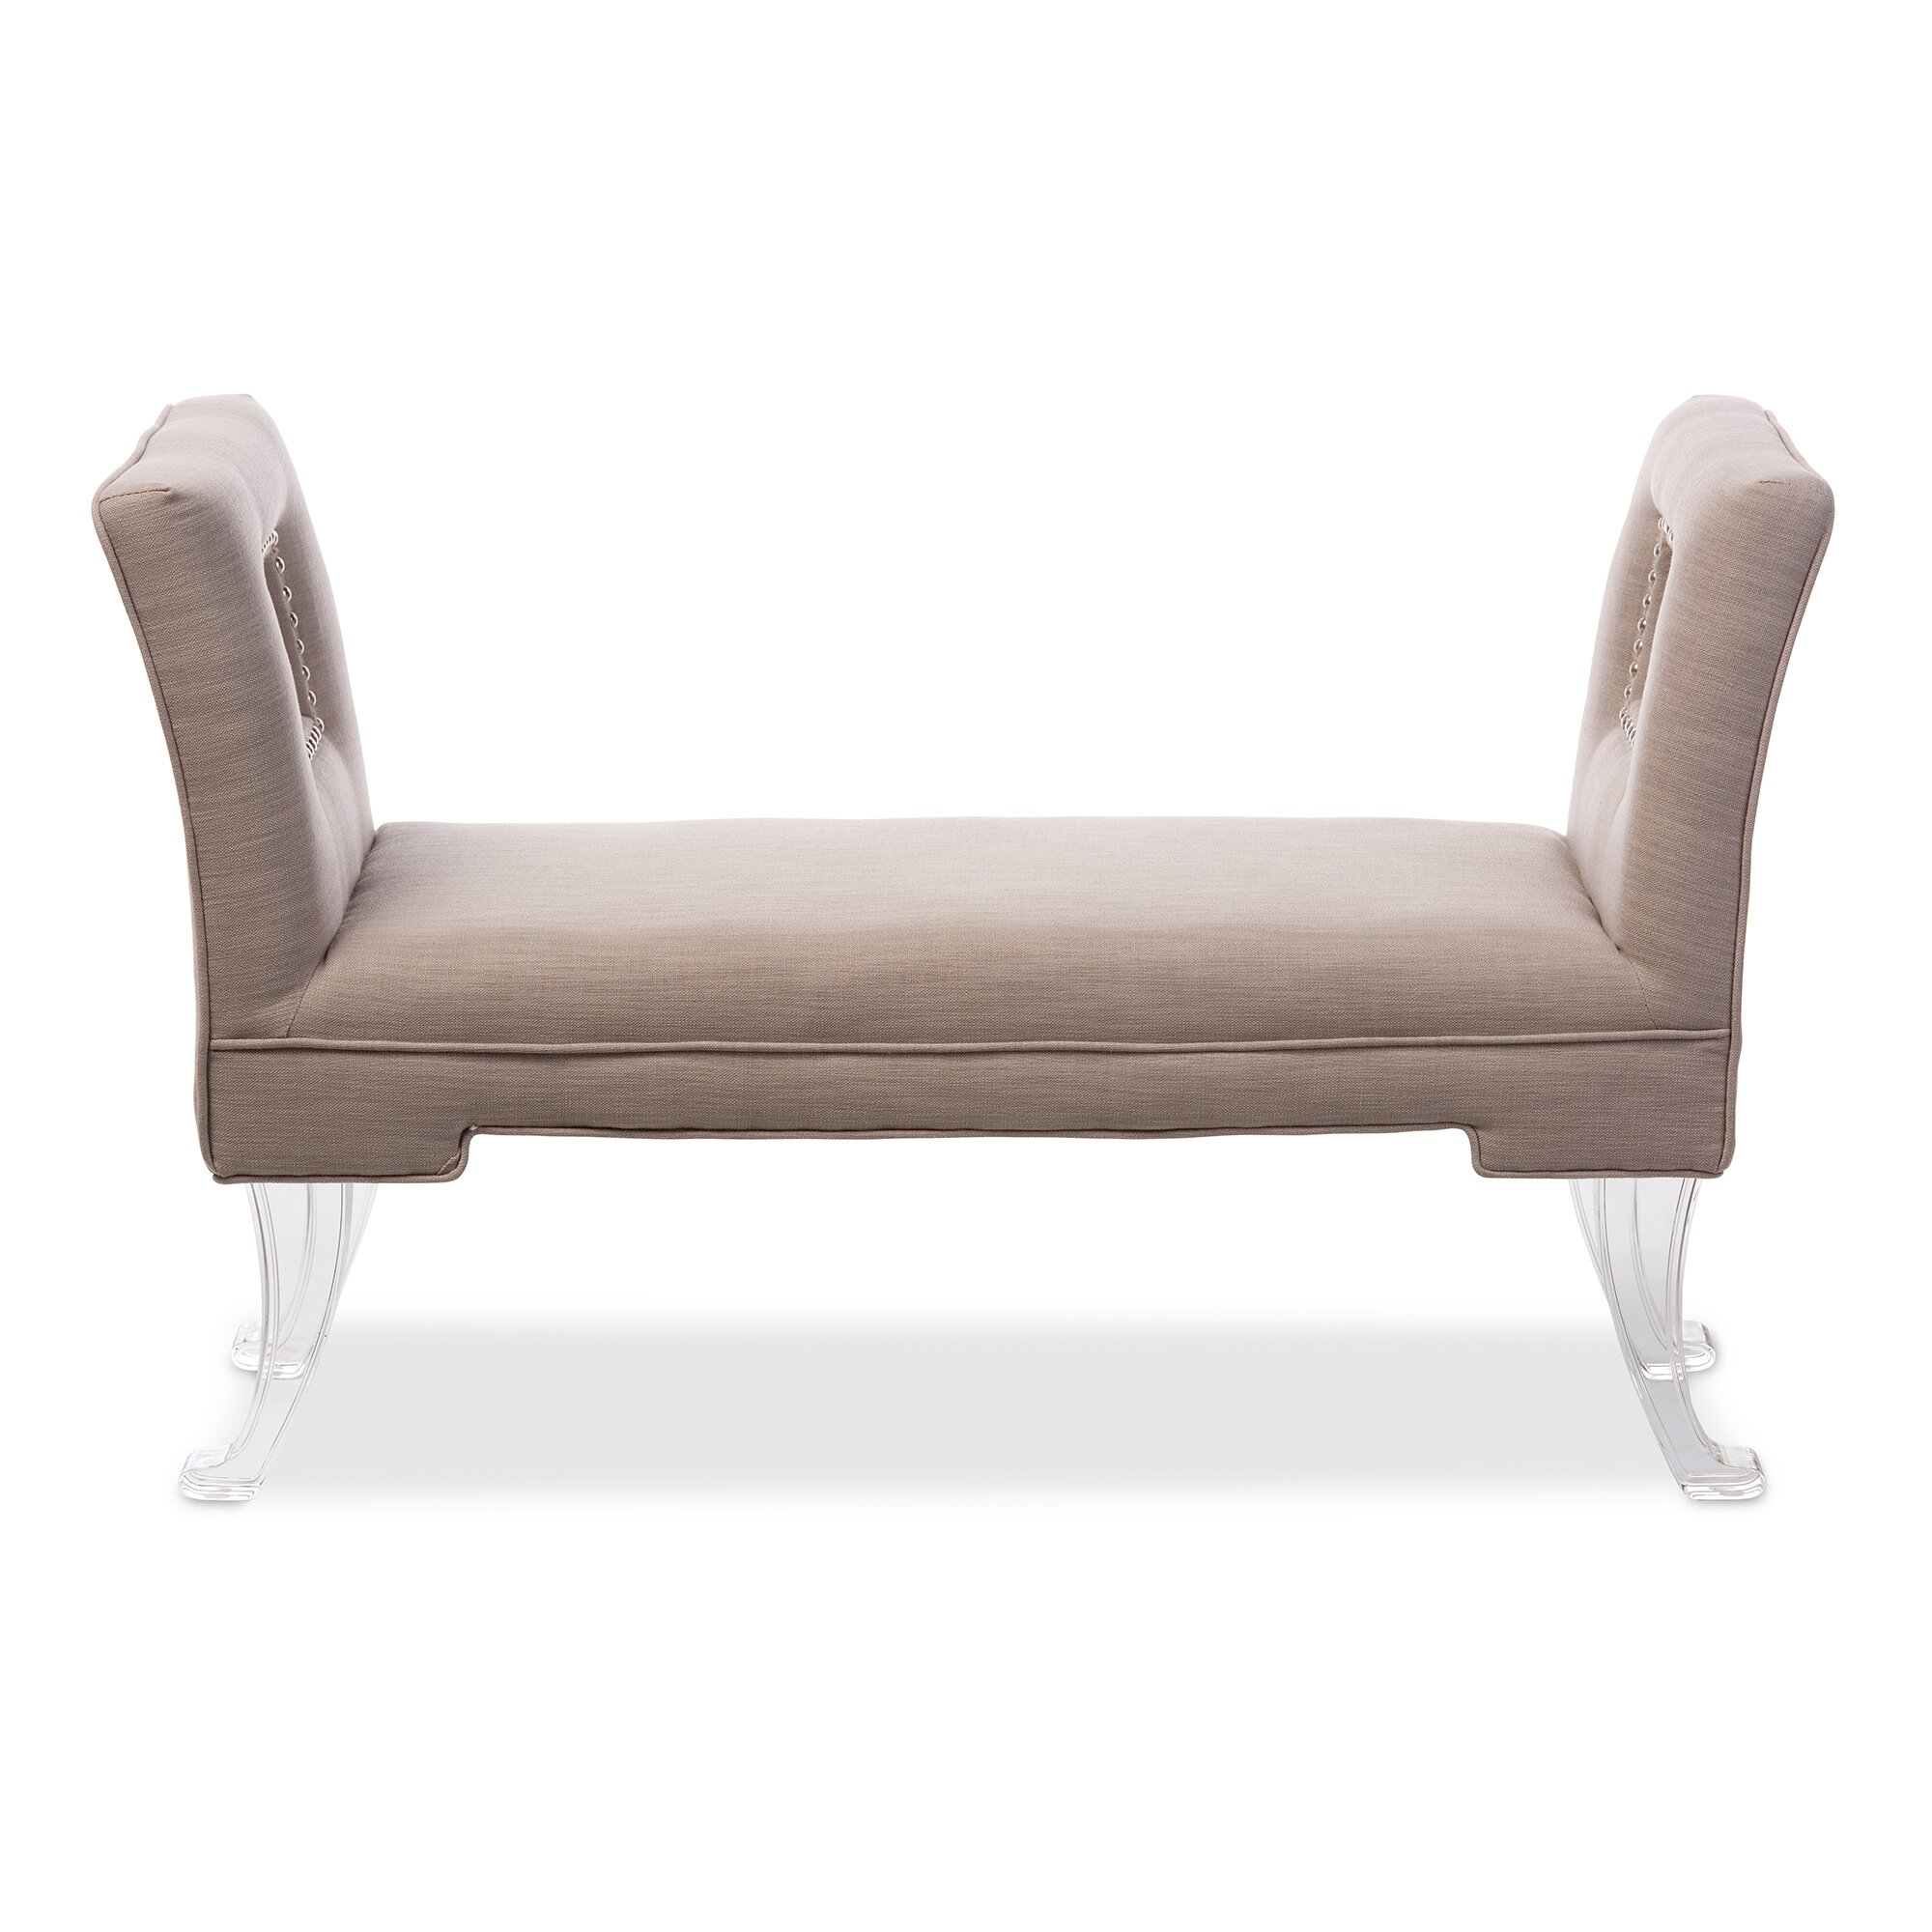 Bedroom bench with arms -  Nice Bedroom Bench With Arms Wholesale Interiors Baxton Studio Bessie Modern And Contemporary Beige Linen Upholstered